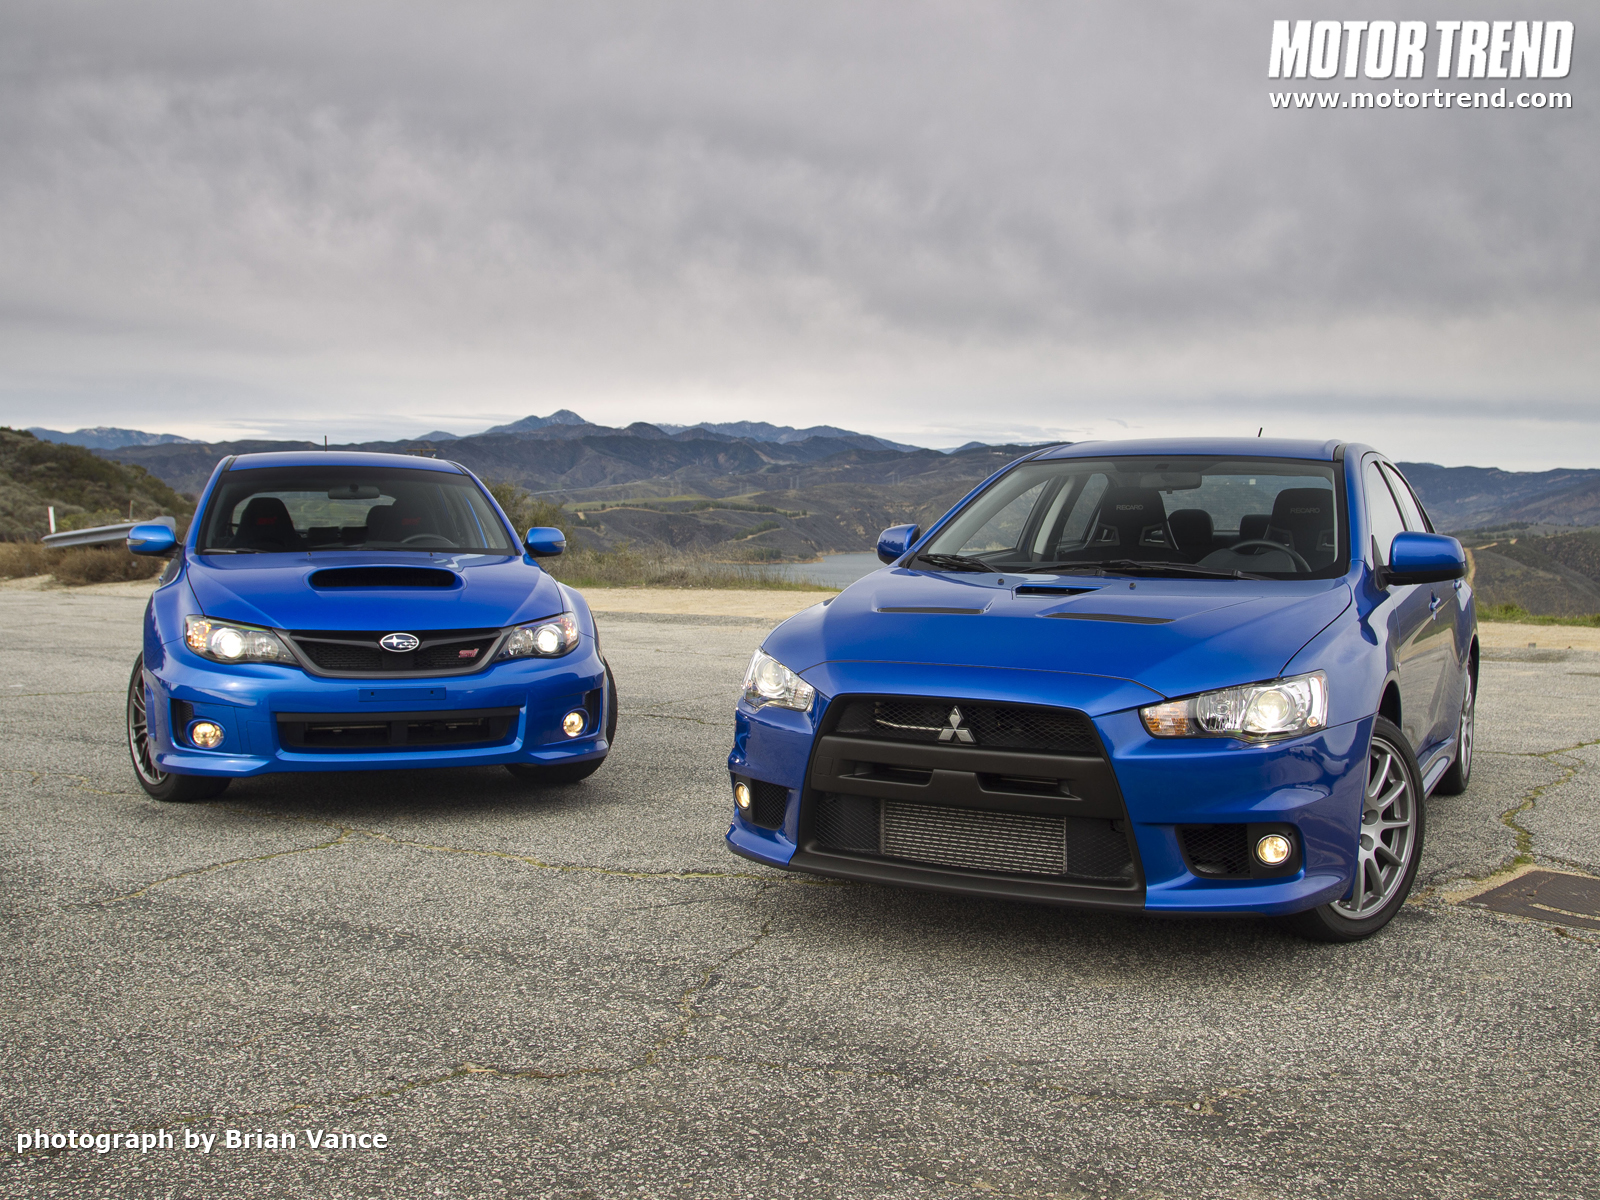 Subaru WRX STI and 2010 Mitsubishi Lancer Evolution X Special Edition 1600x1200